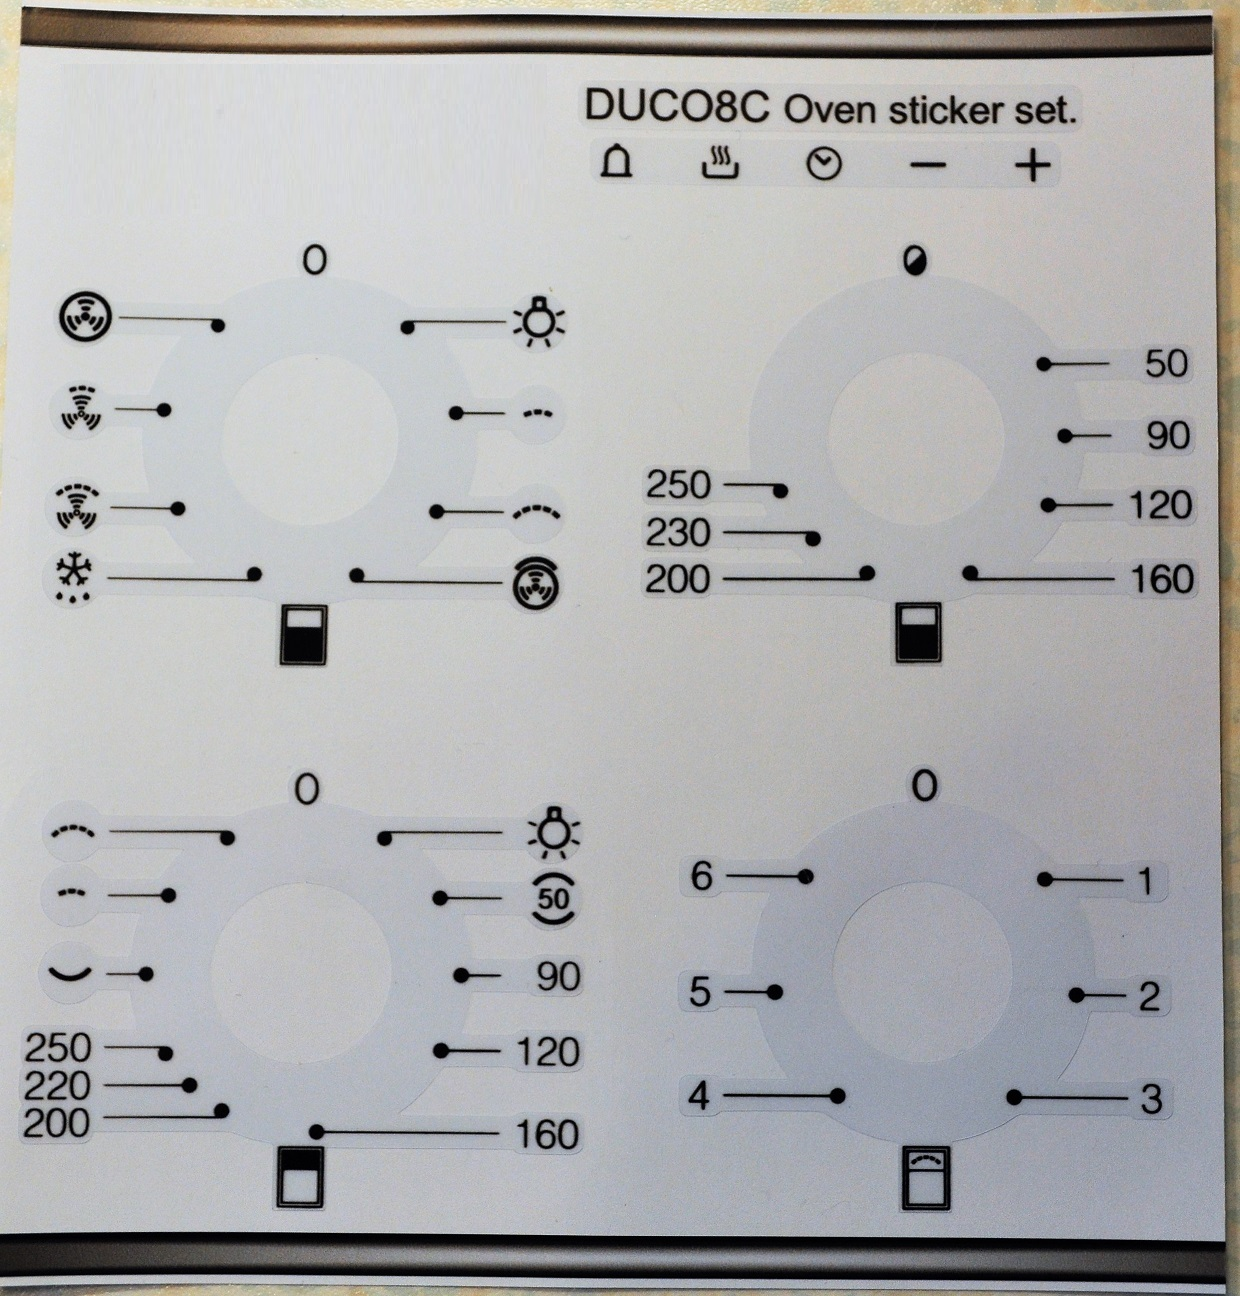 Smeg Duco8c Compatible Panel Fascia Sticker Set Duco8c 14 99 Oven Stickers Decal Sticker Sets